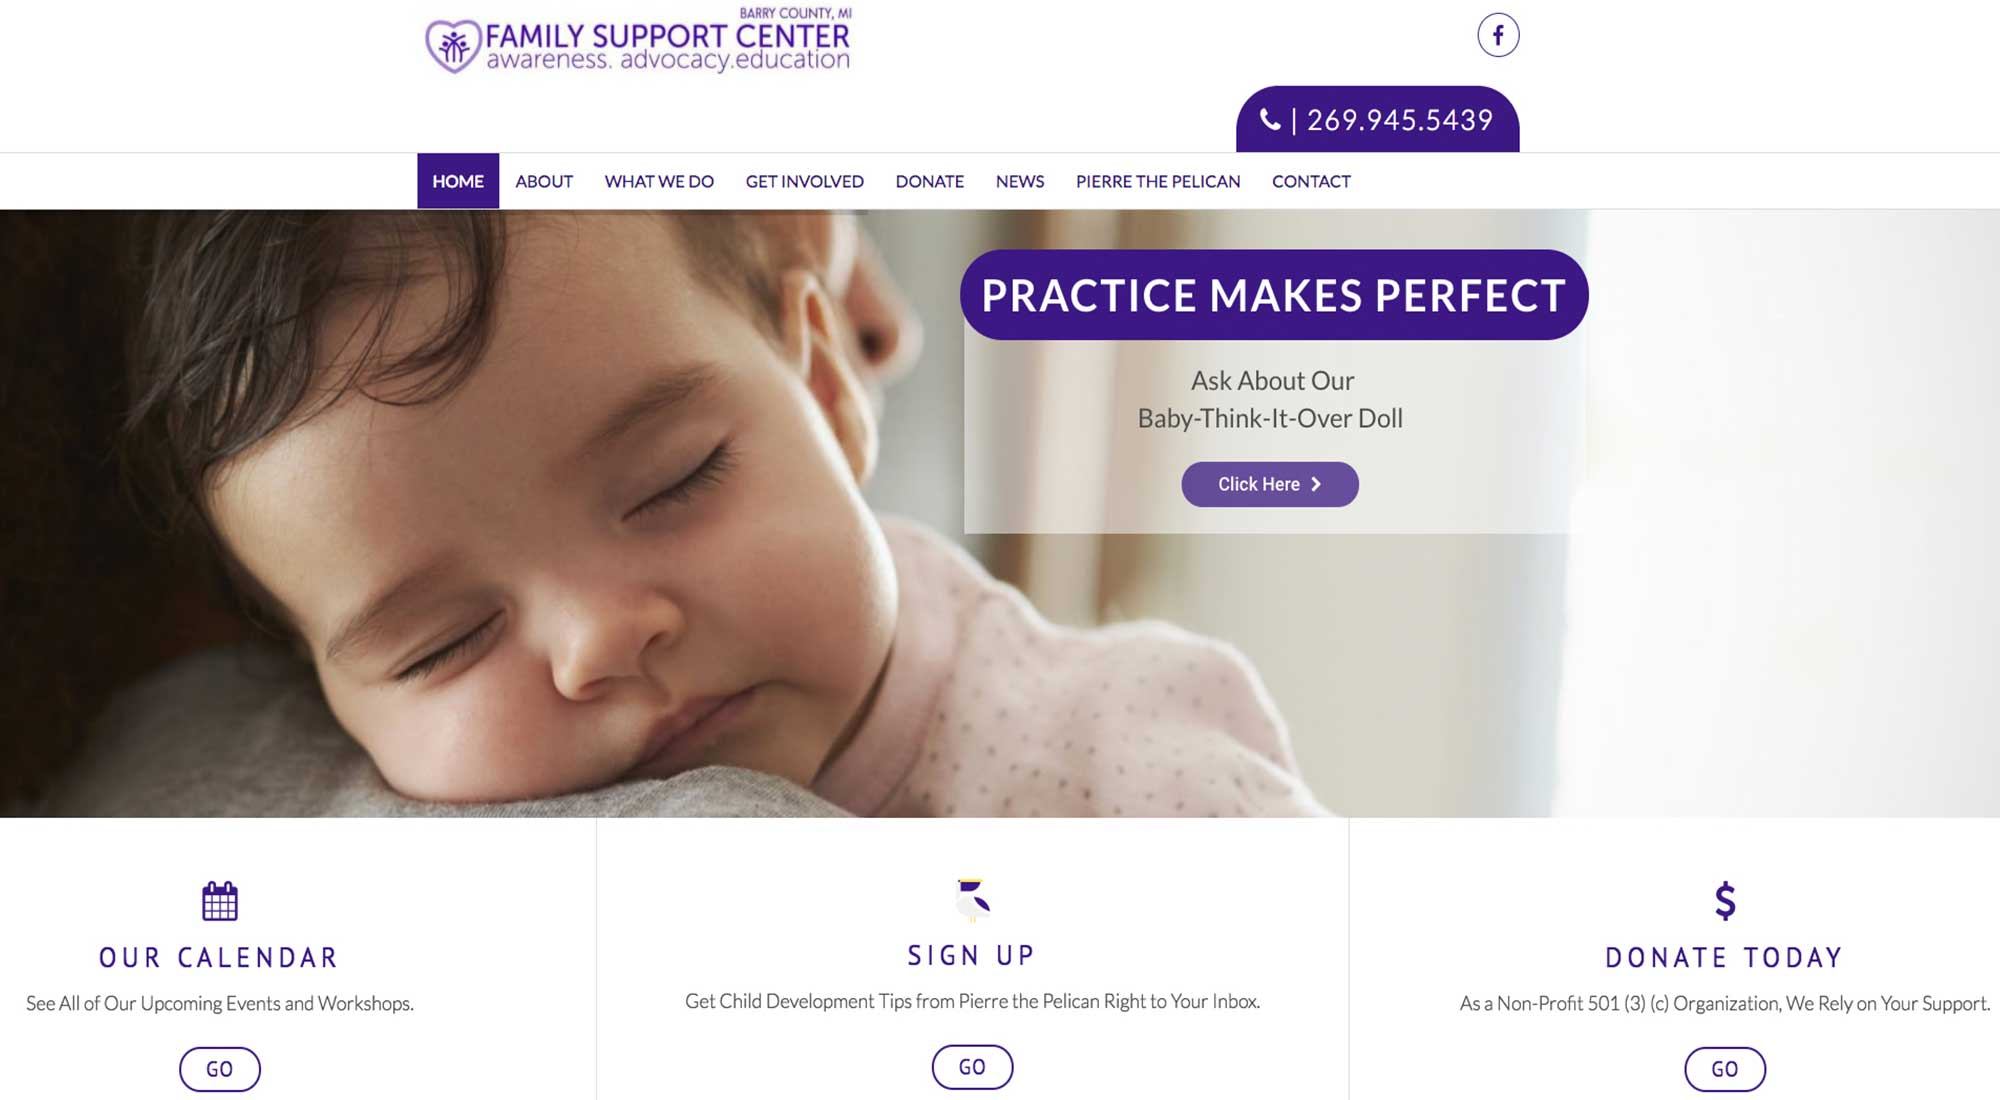 Family Support Center of Barry County MI Website Designer Pixelvine